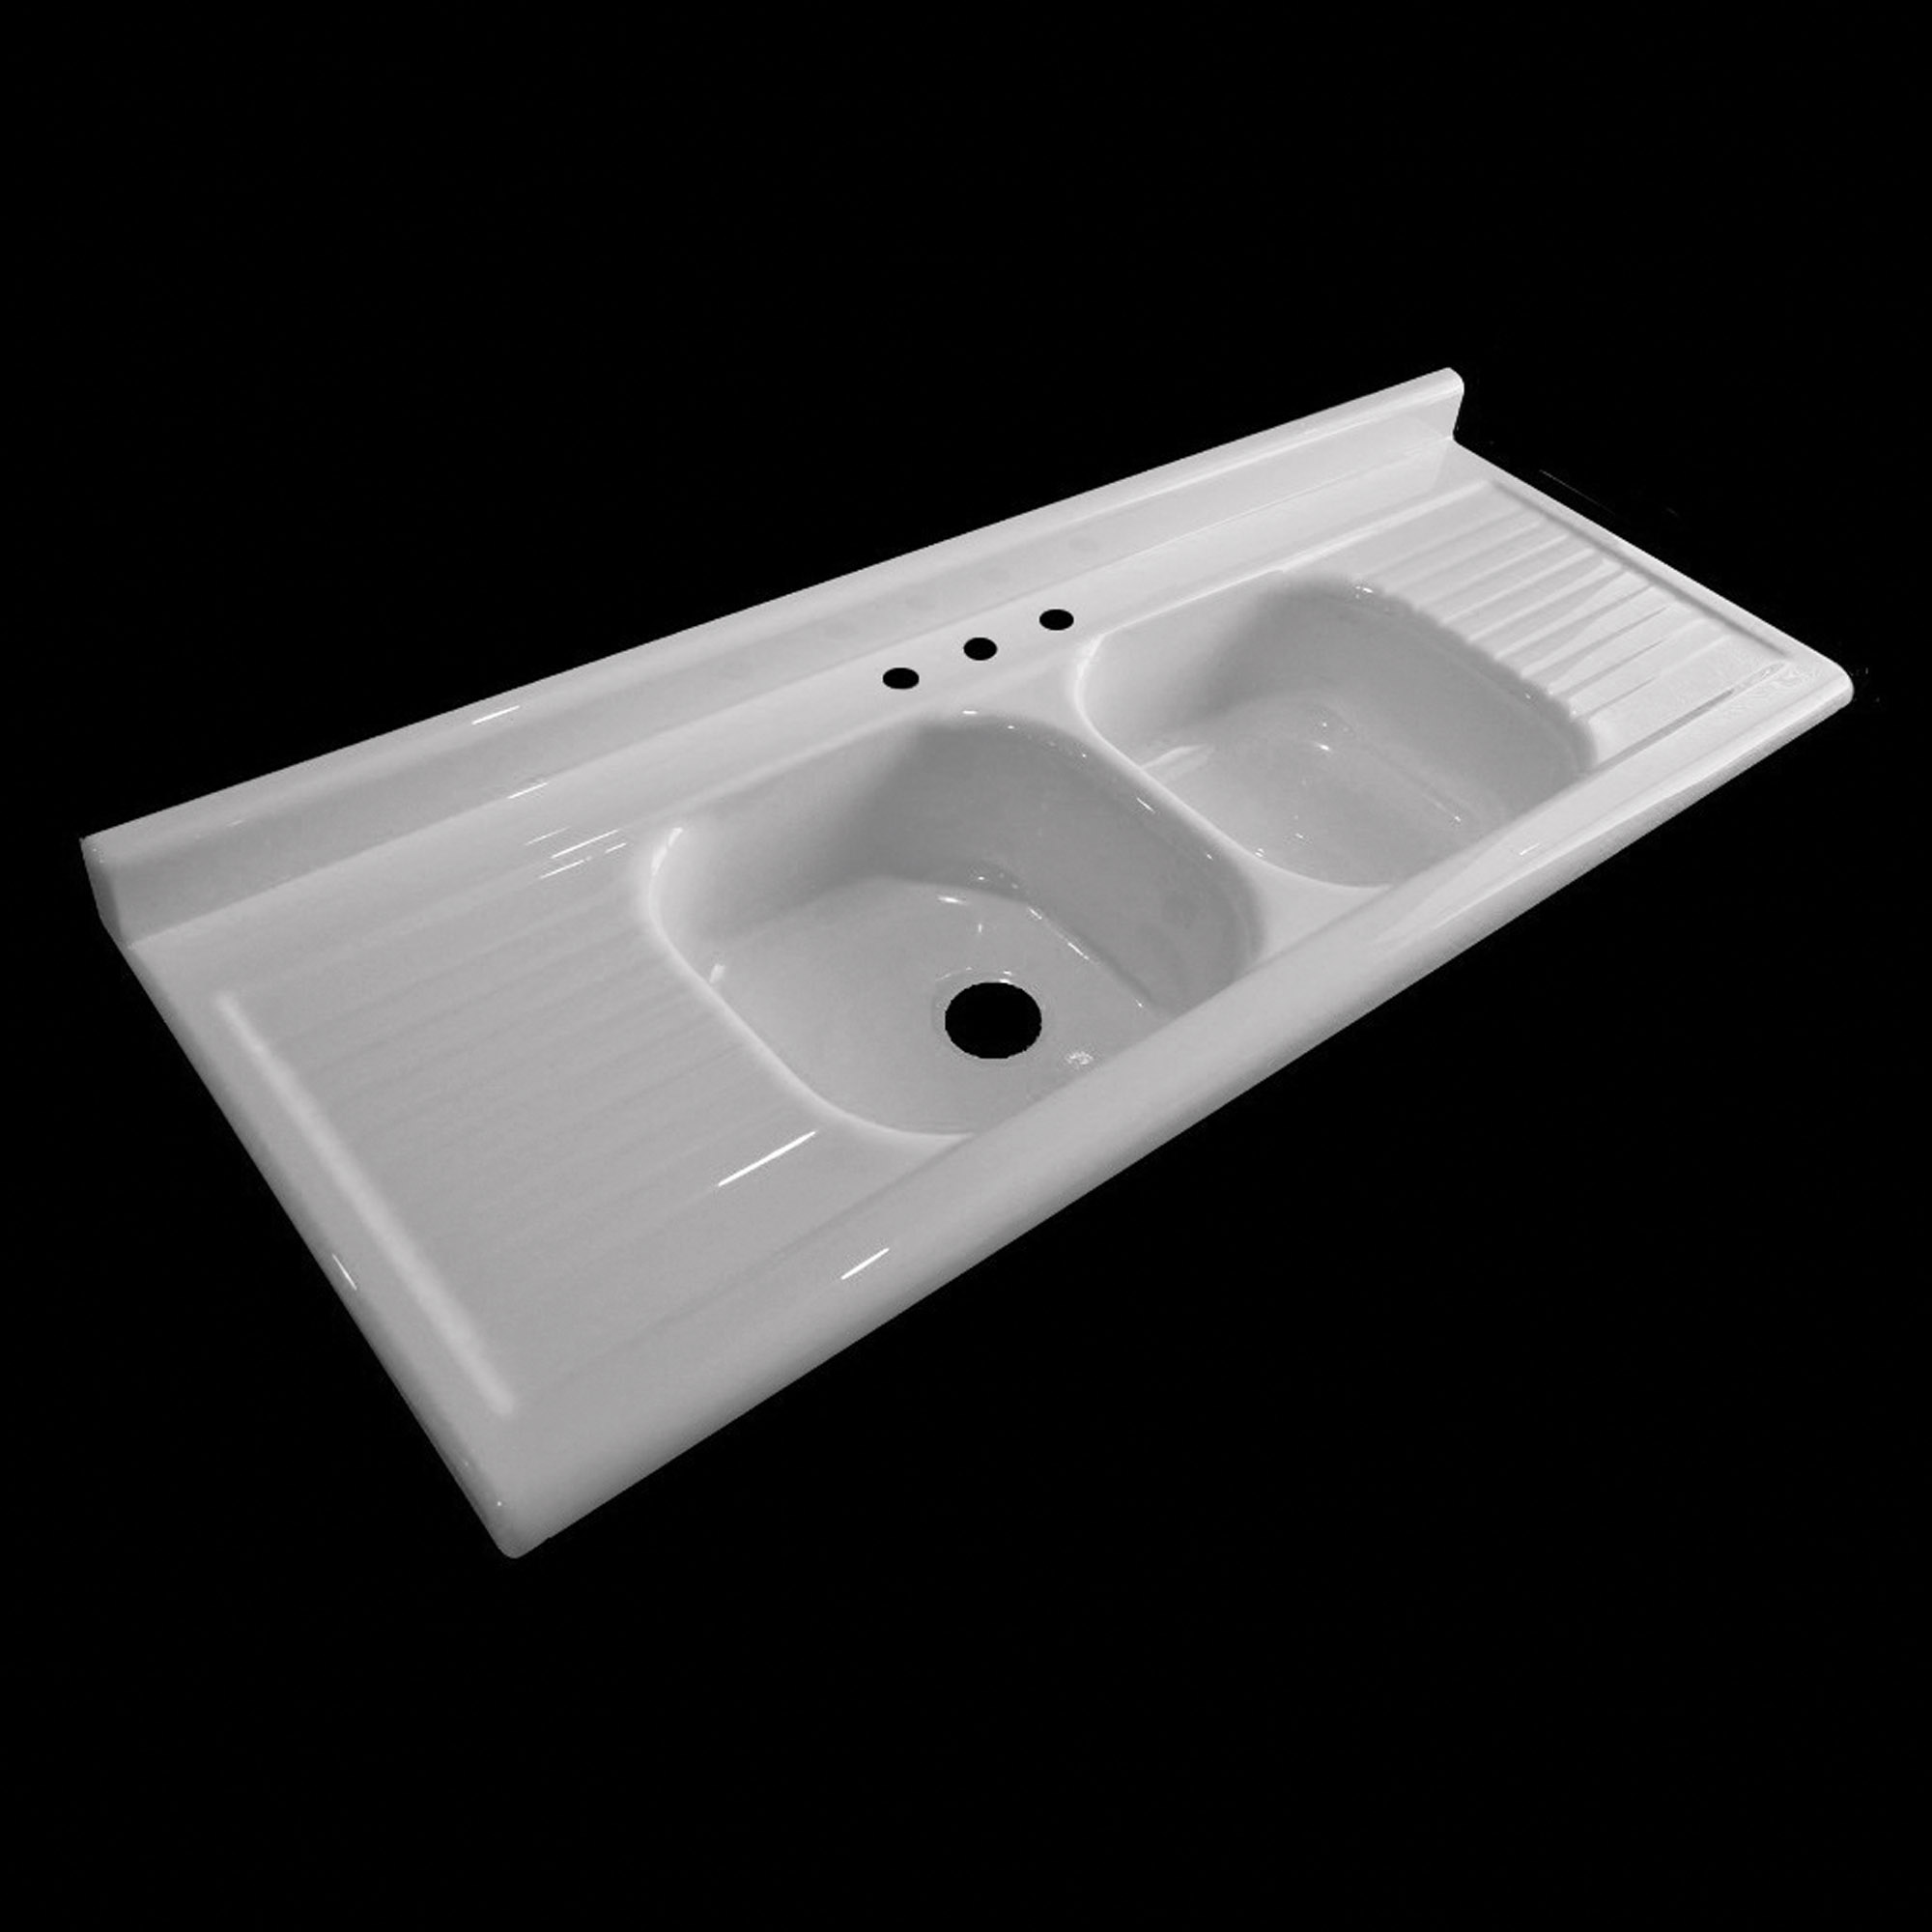 NBI Drainboard Sinks reproduces hard-to-find models, like this 1950s-era double bowl/double drainboard sink.